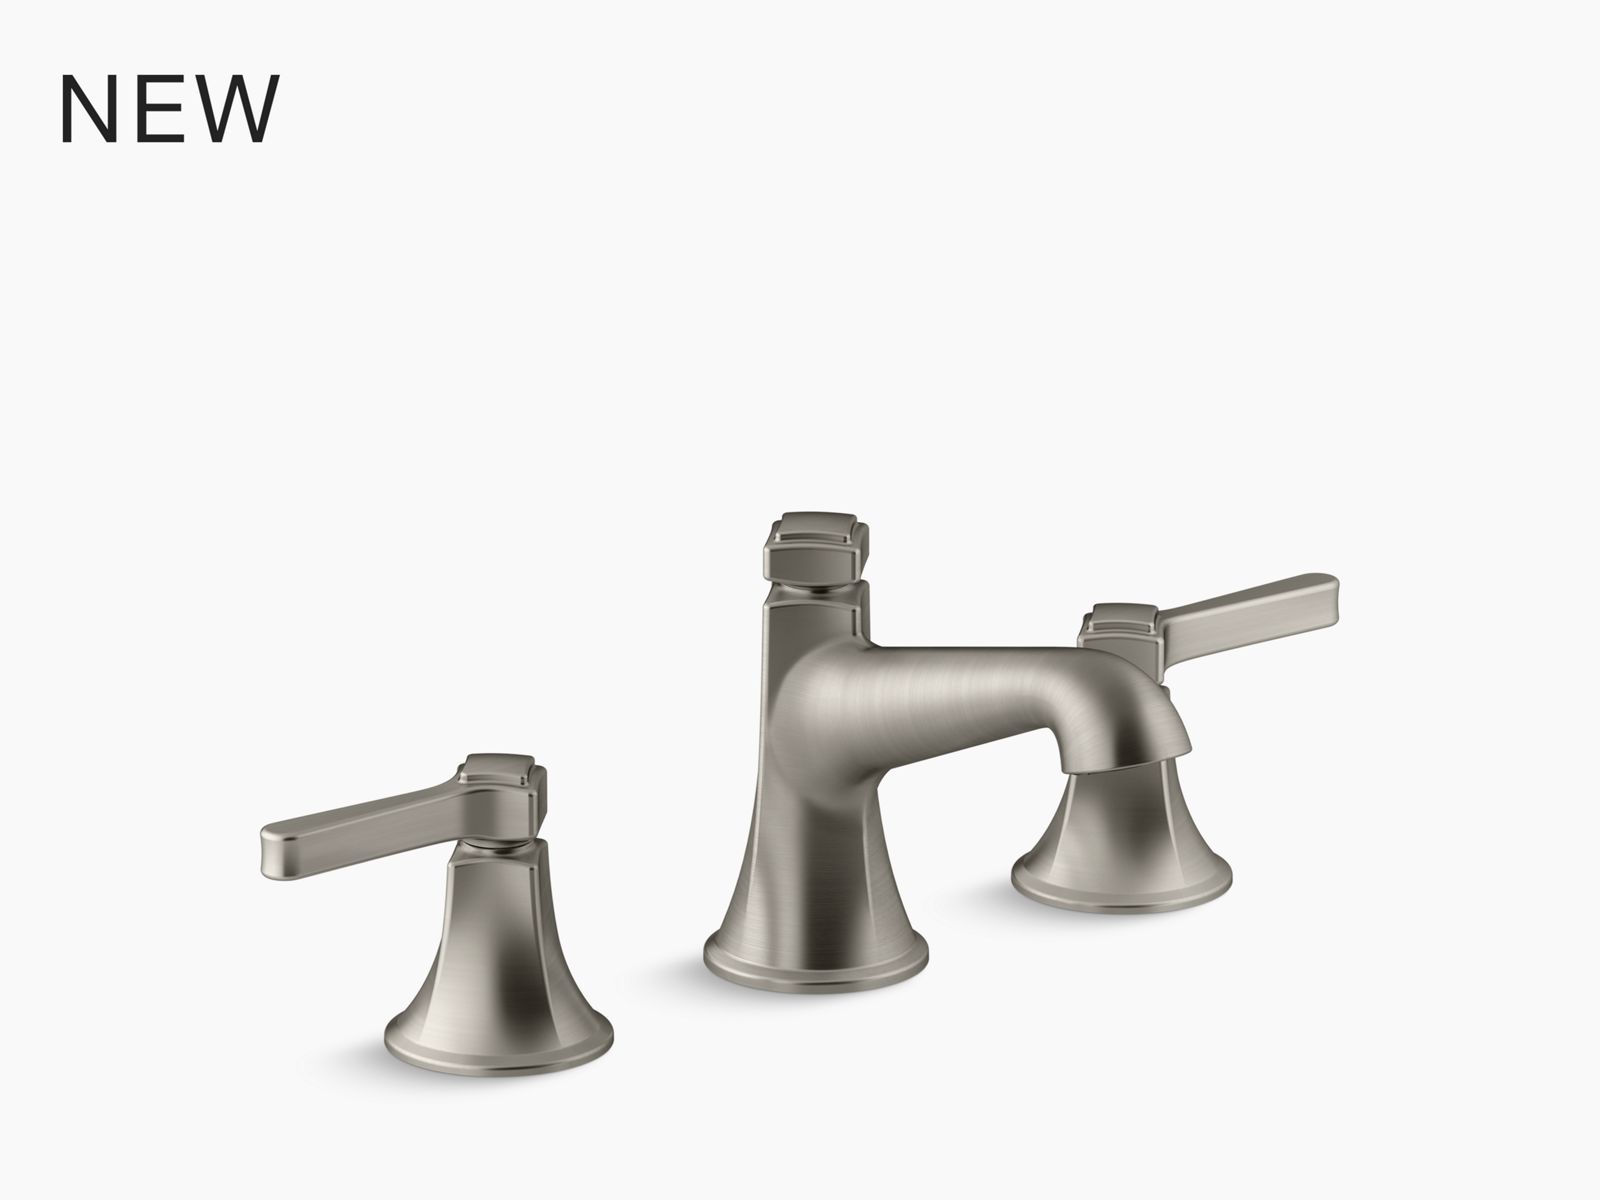 alma pull down kitchen faucet with soap lotion dispenser